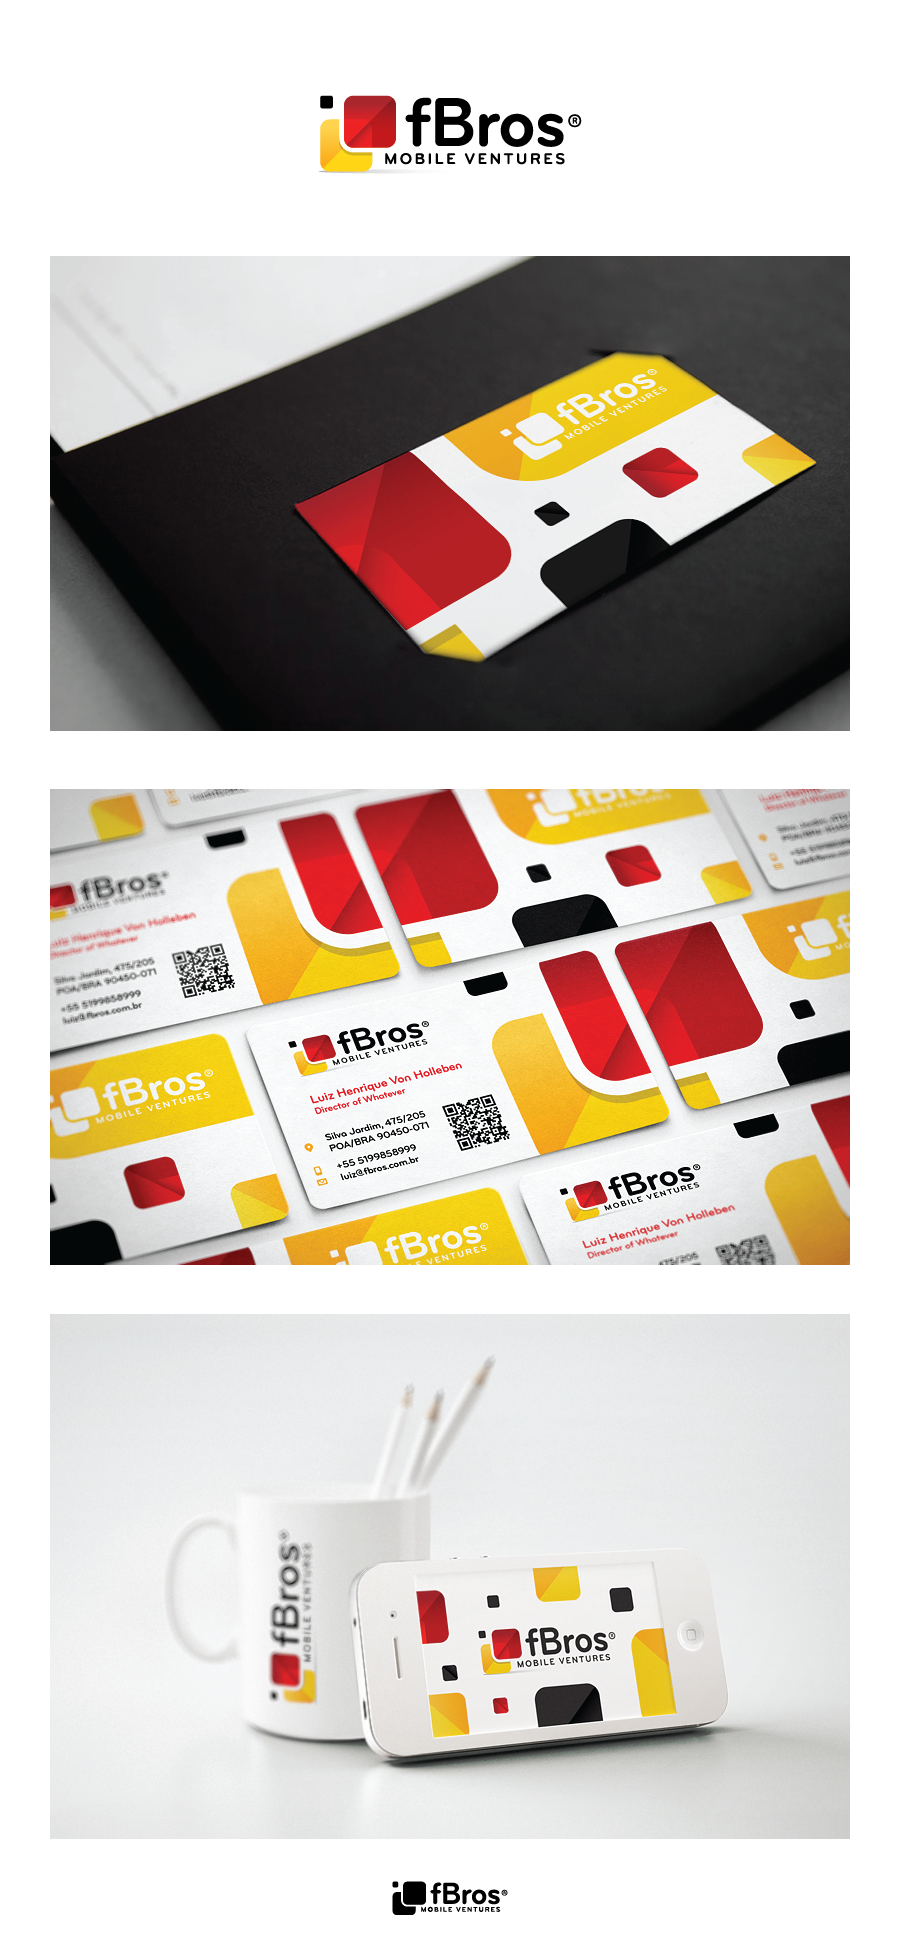 *Prize Guaranteed* Create the next logo and business card for fBros